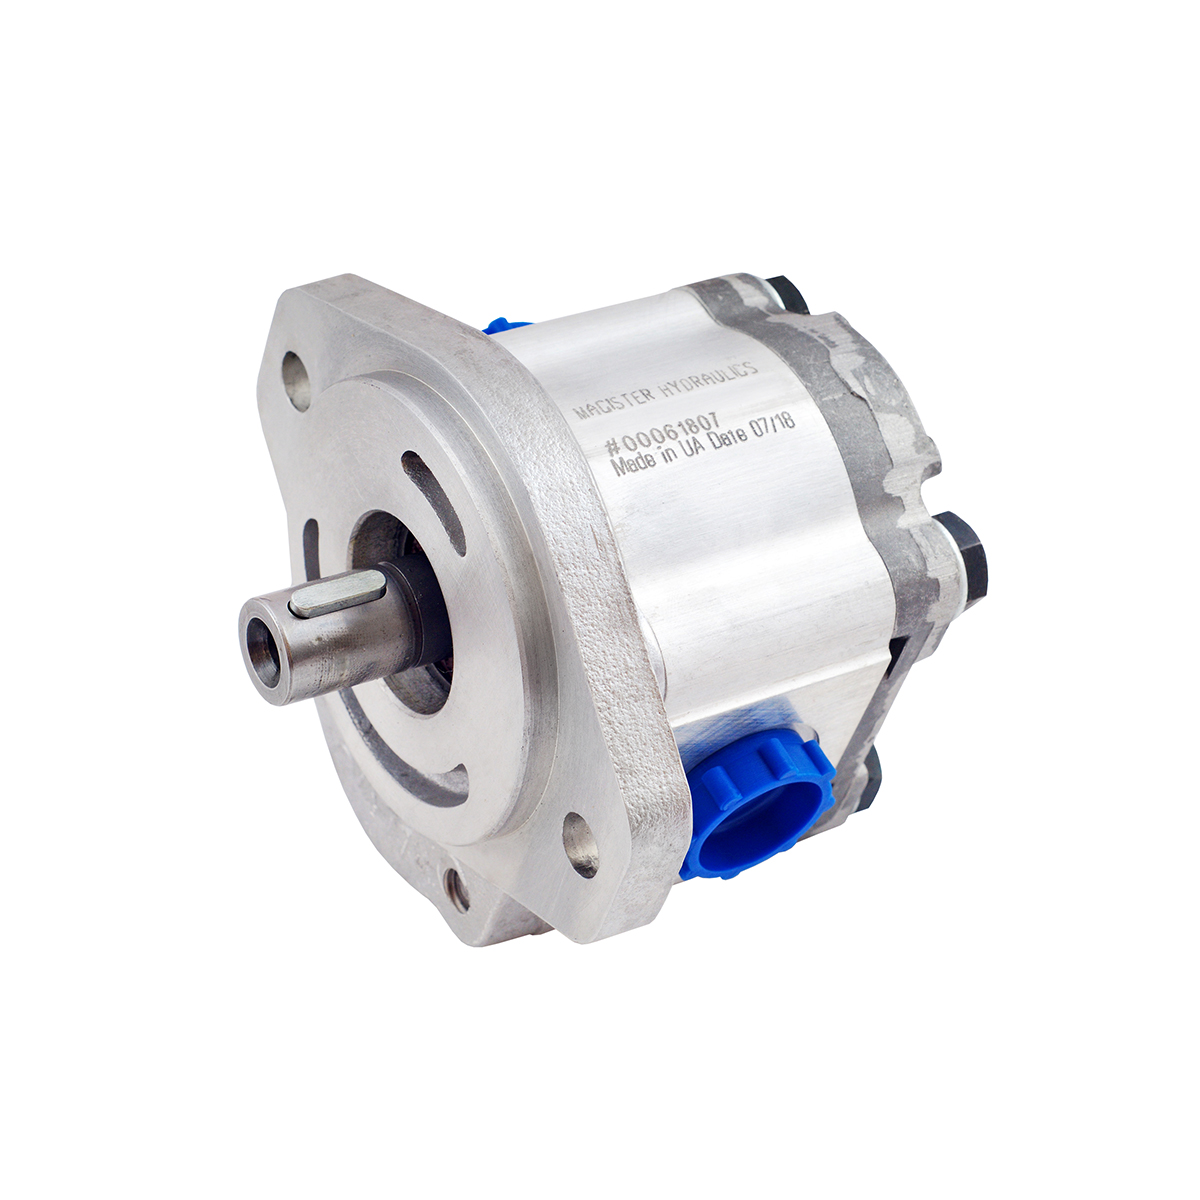 0.38 CID hydraulic gear pump, 5/8 keyed shaft counter-clockwise gear pump | Magister Hydraulics